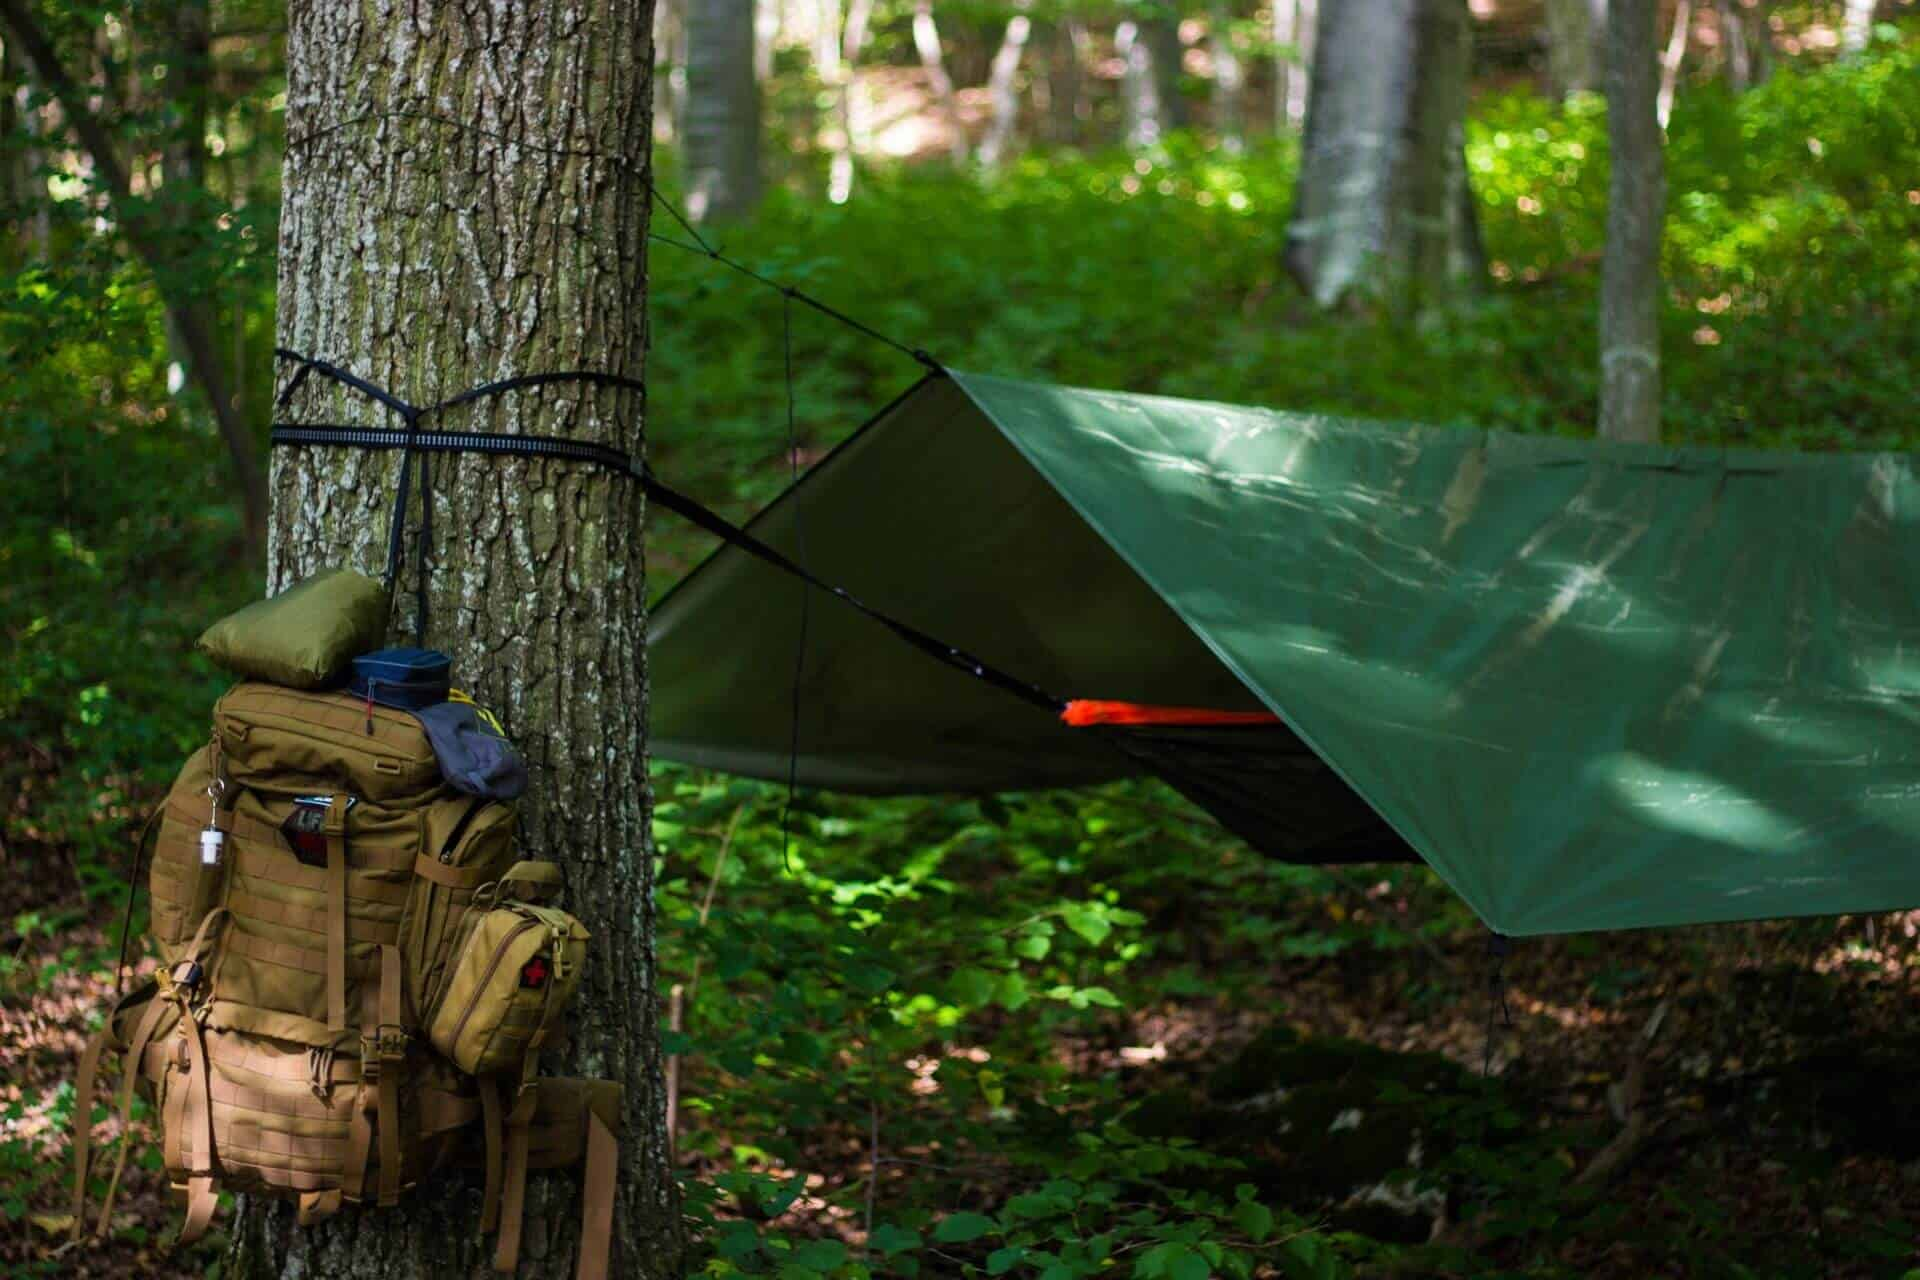 How To Make a Tarp Shelter 15 Updated Designs 2020